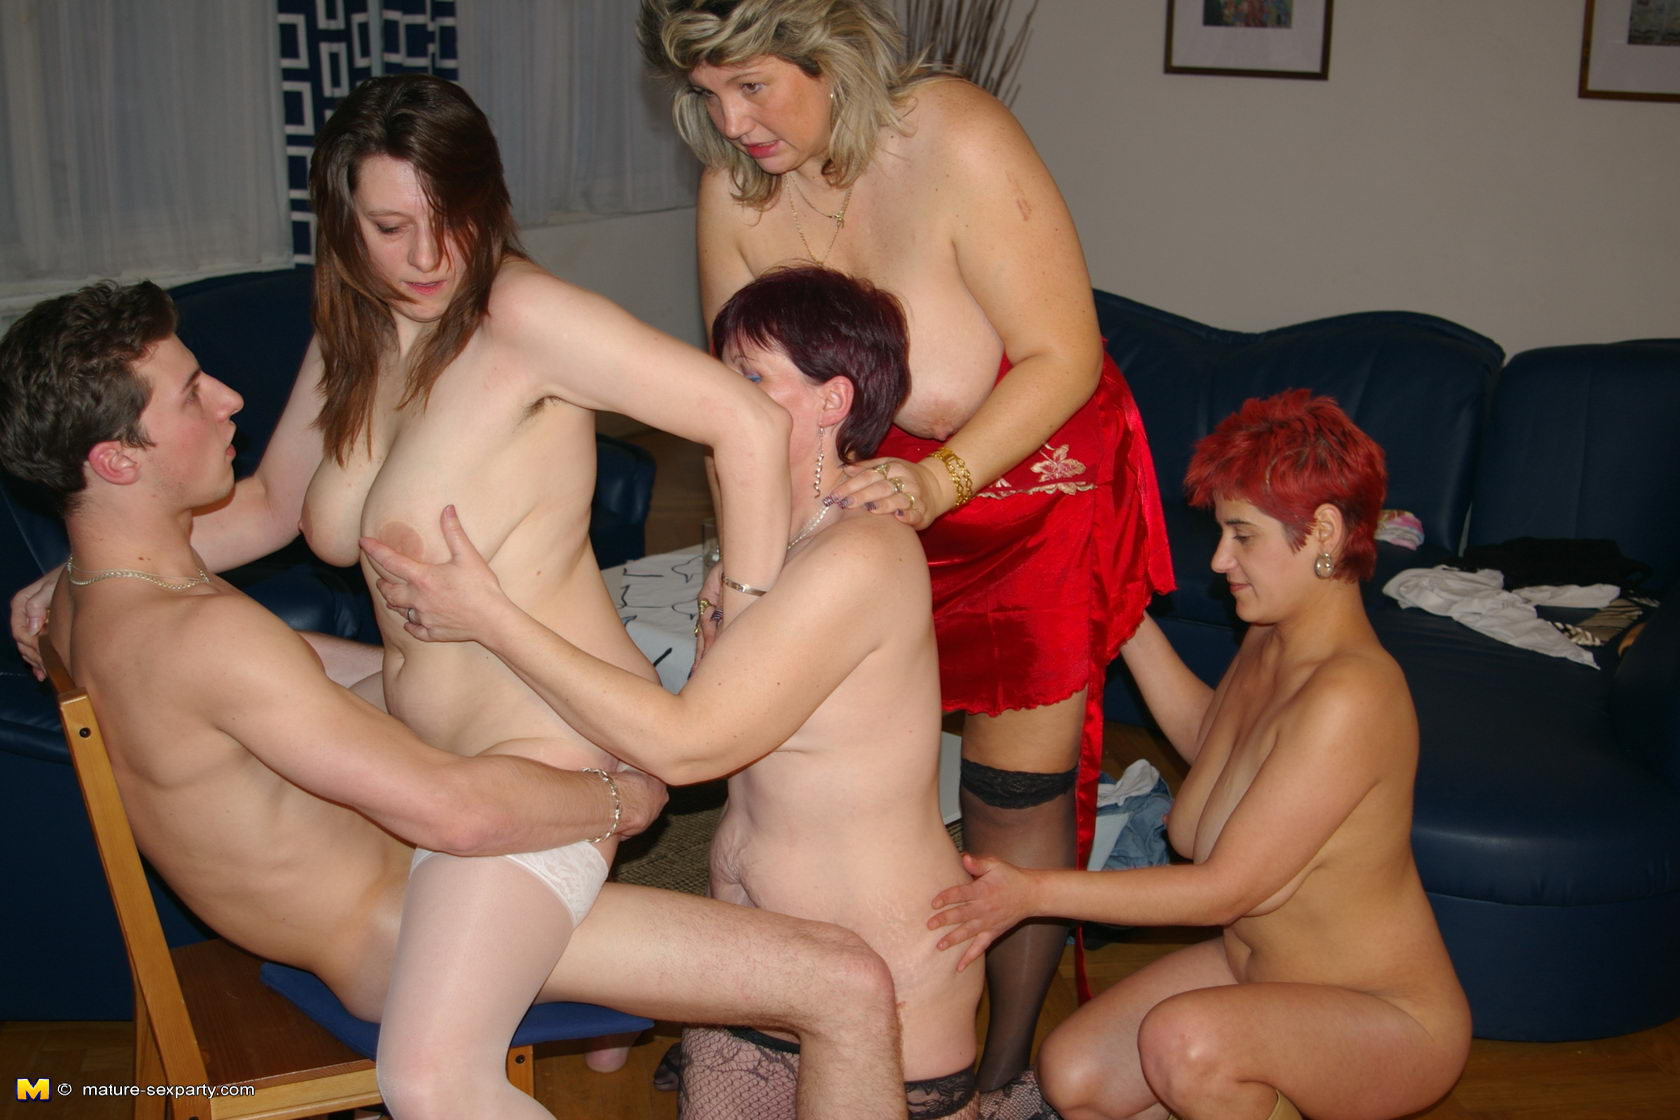 hotties showing their fuck holes